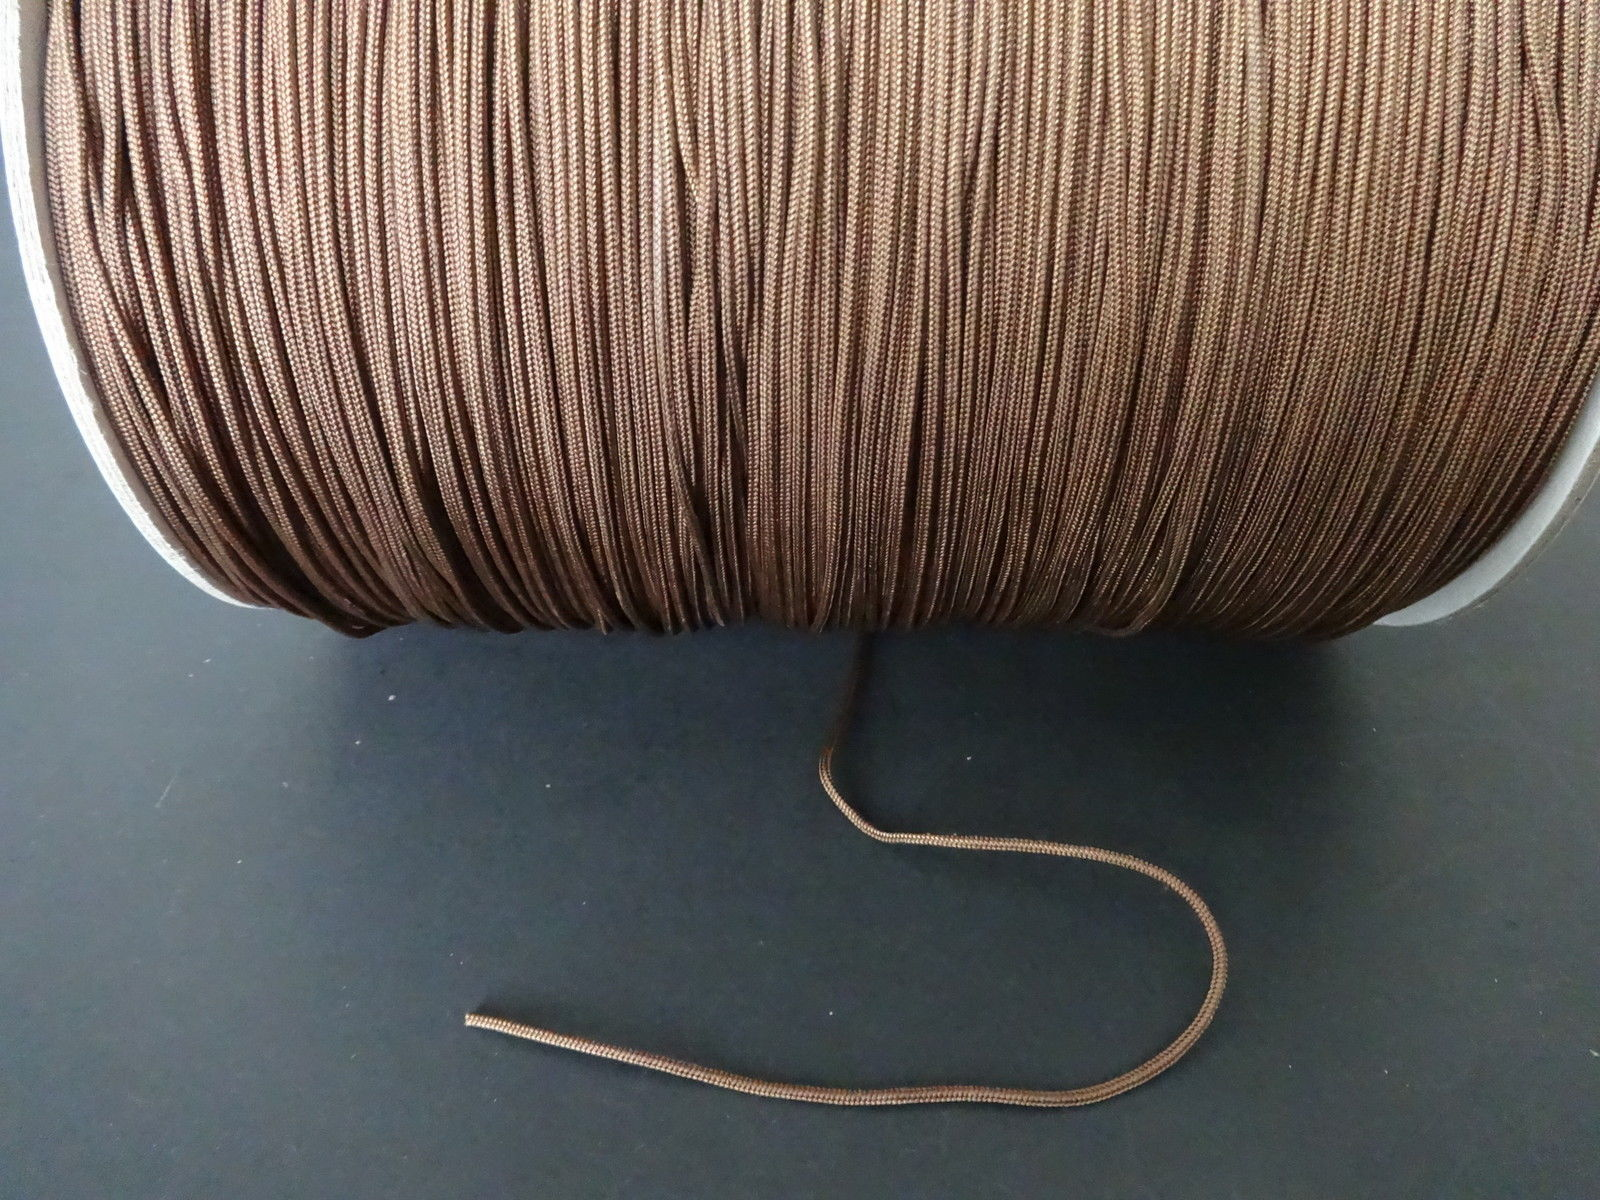 25 FEET:1.8mm BROWNSTONE LIFT CORD for ROMAN/PLEATED shades &HORIZONTAL blind